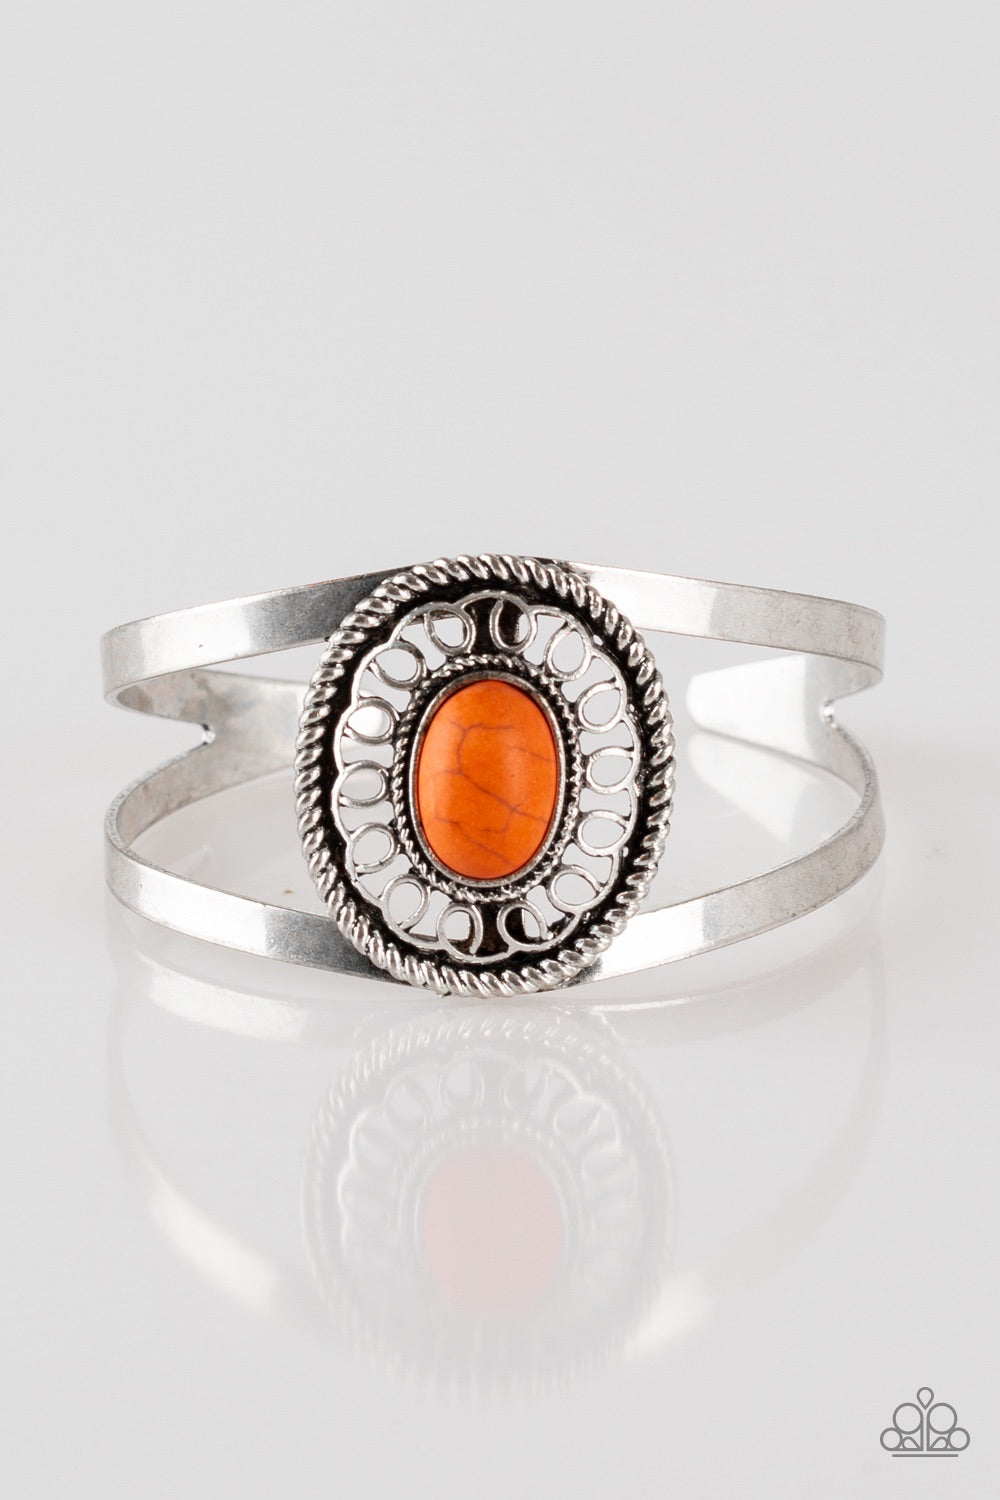 Paparazzi Deep In The Tumbleweeds Bracelet- Orange